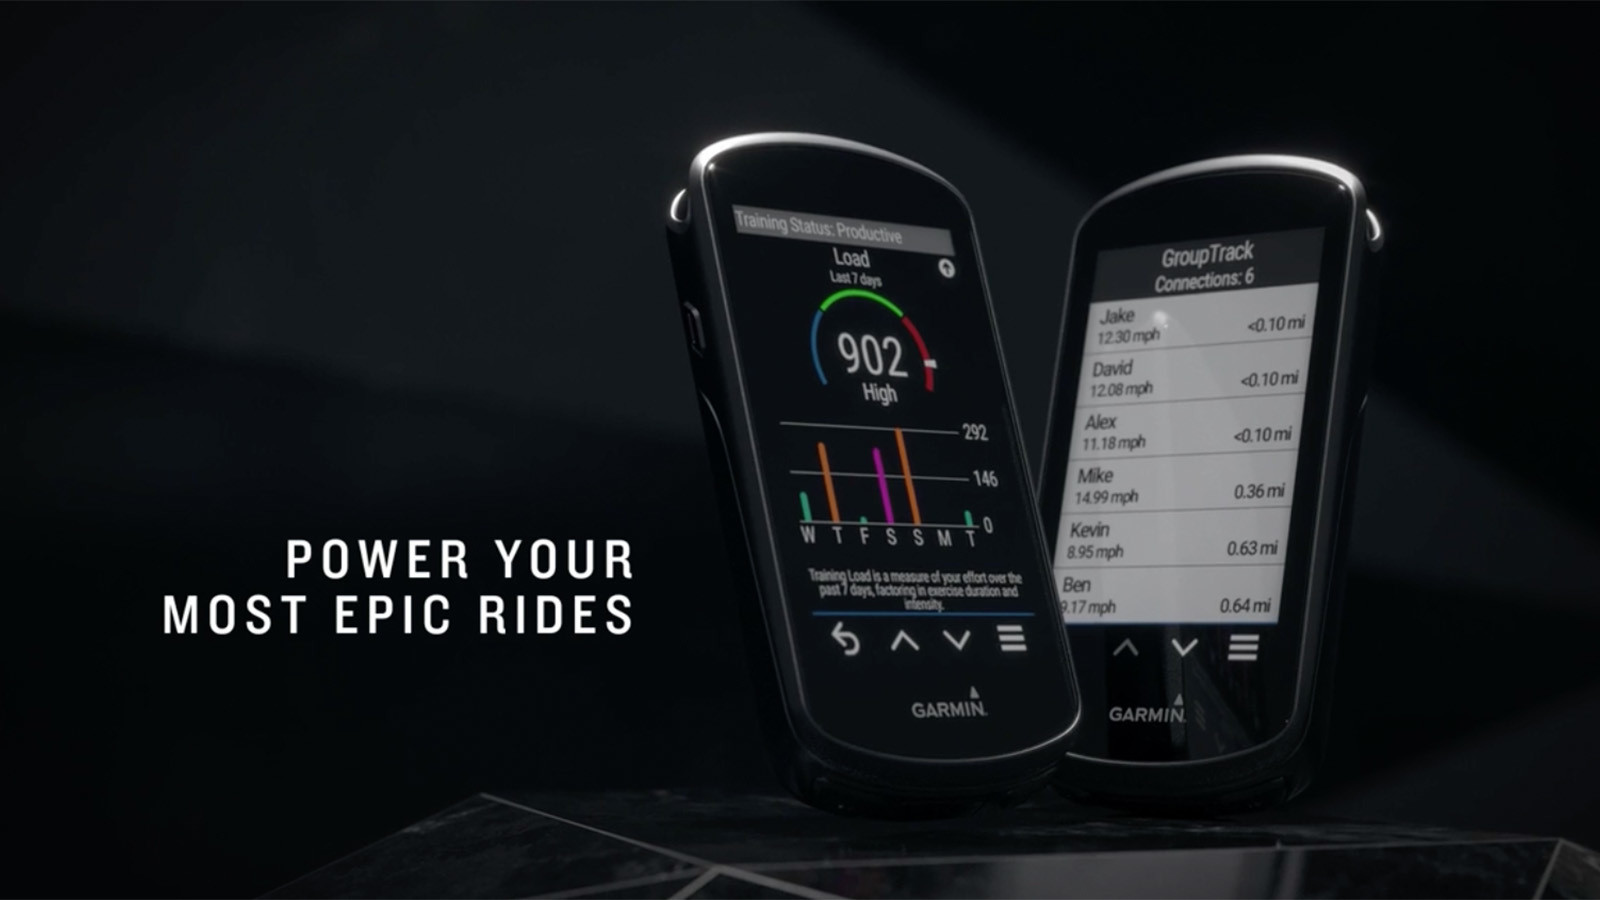 Get Your Tech On - Garmin Launches Two New Bike Computers